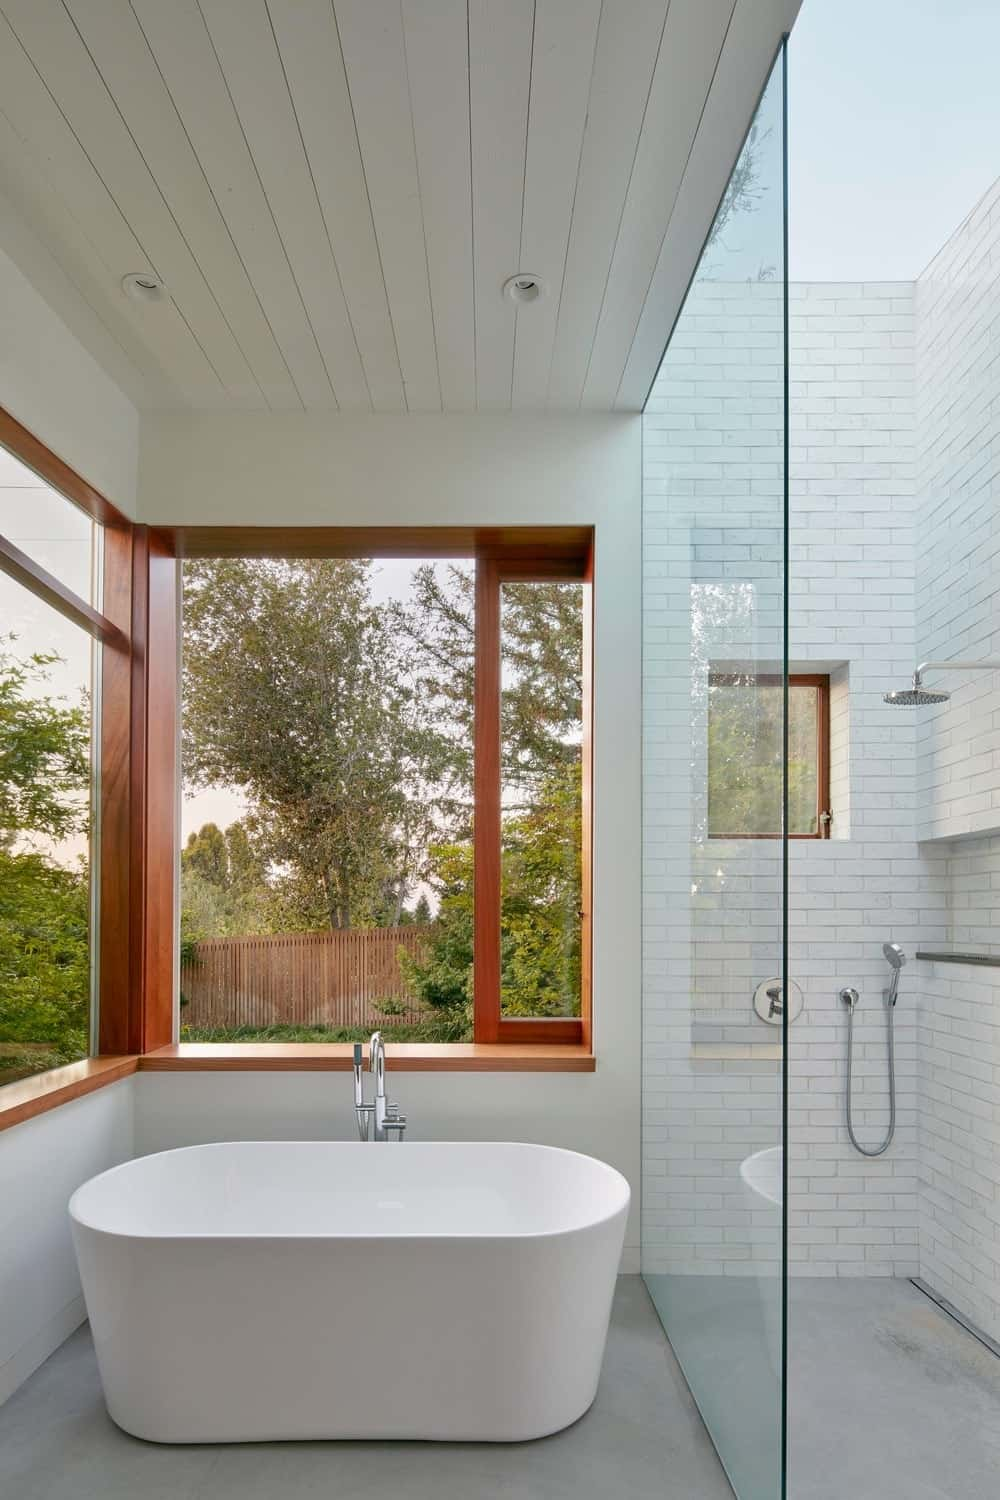 Primary bathroom in the Modern-Day California Ranch House designed by Malcolm Davis Architecture.